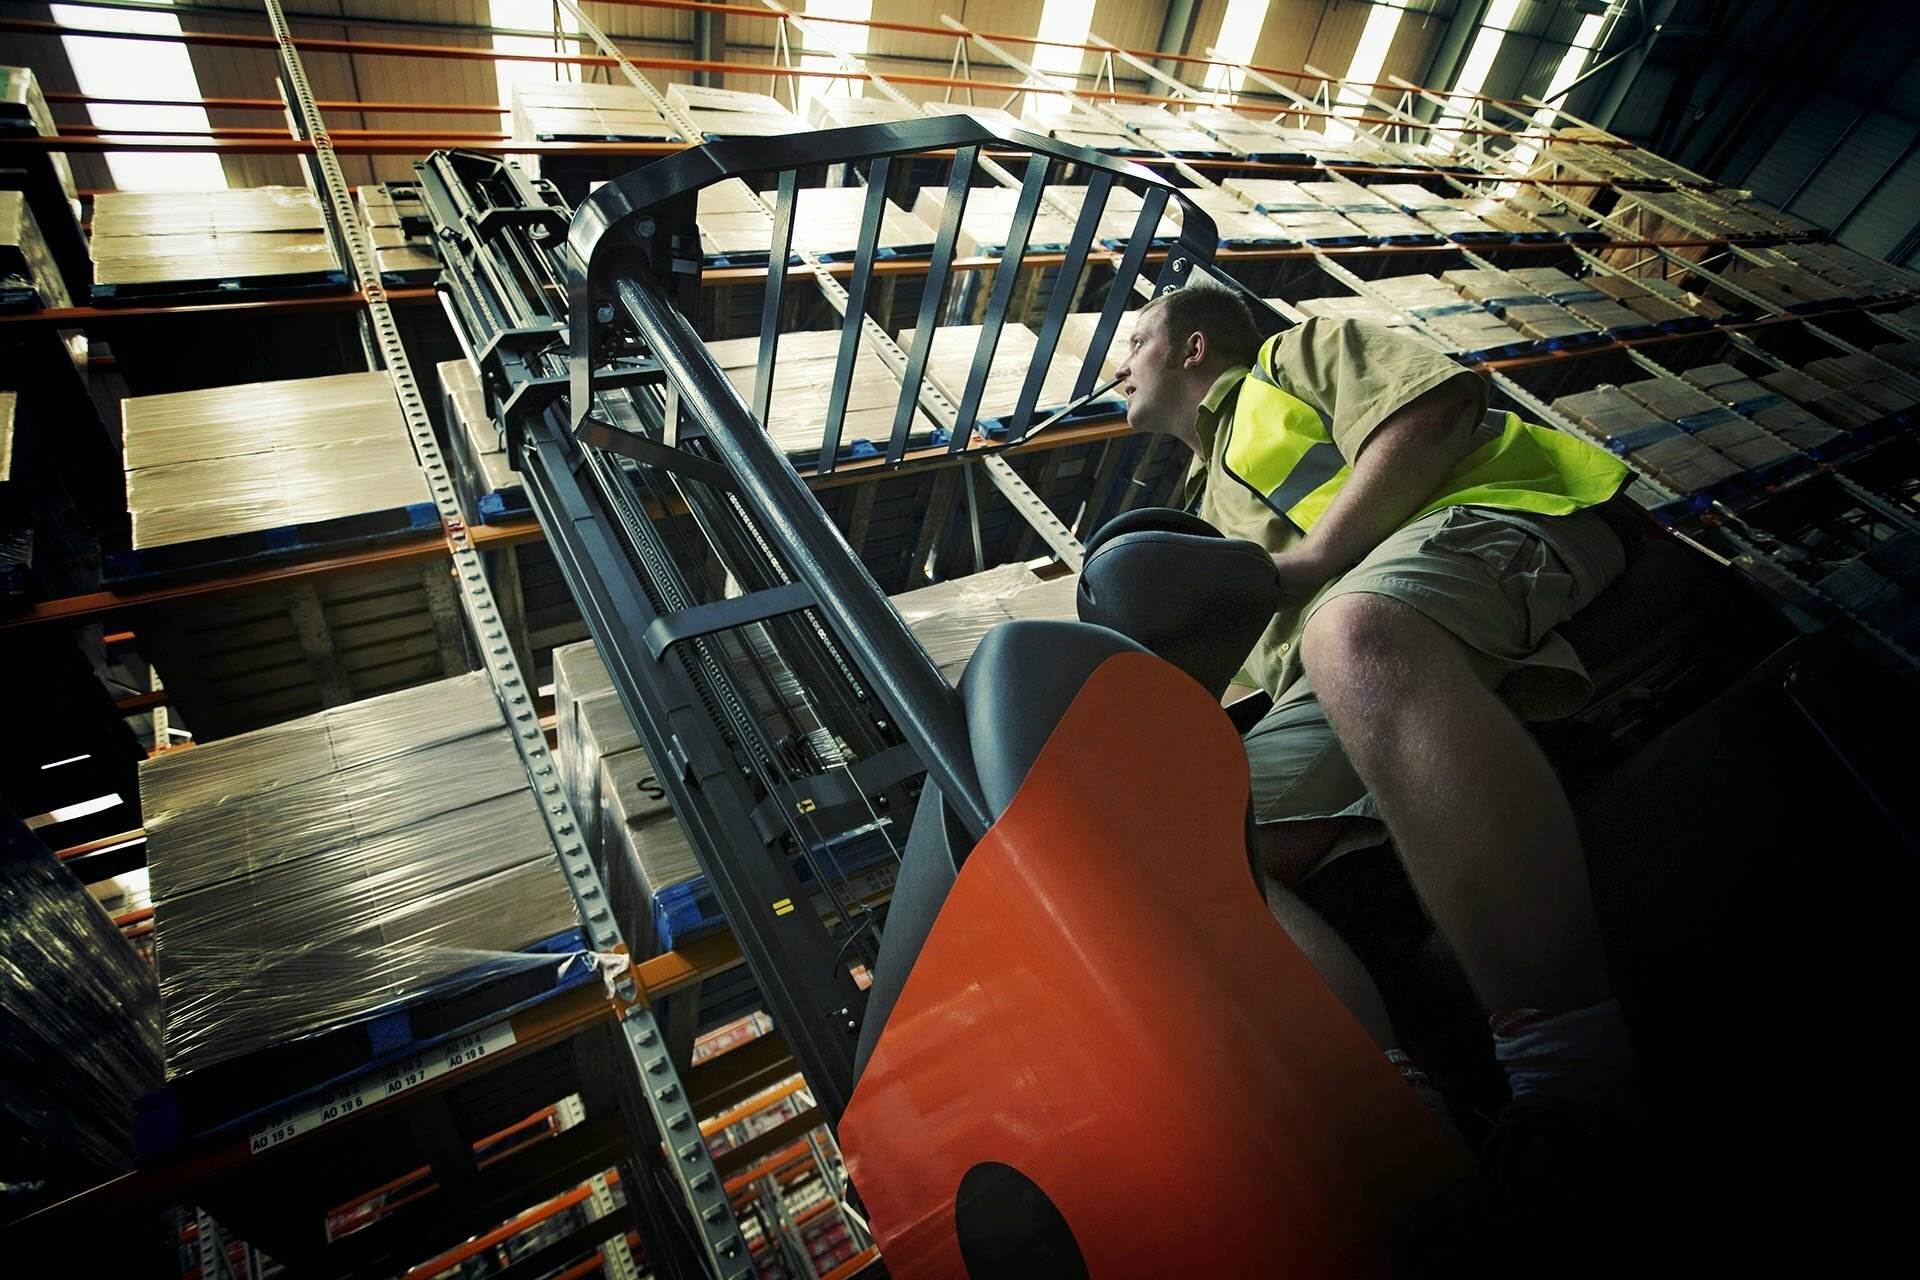 Image of a fork lift representing a business asset loan. NBS Home Loans offering Best Asset Loans for small and medium businesses and companies Australia-wide, based in Seven Hills, Sydney.